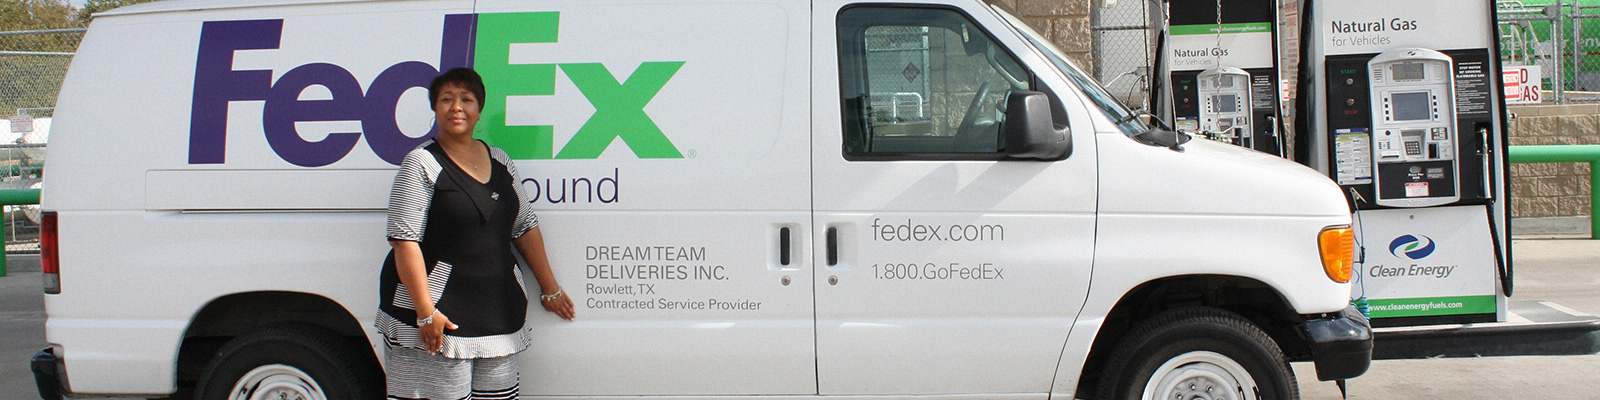 fedex ground service provider delivers dreams with cng clean energy fuels